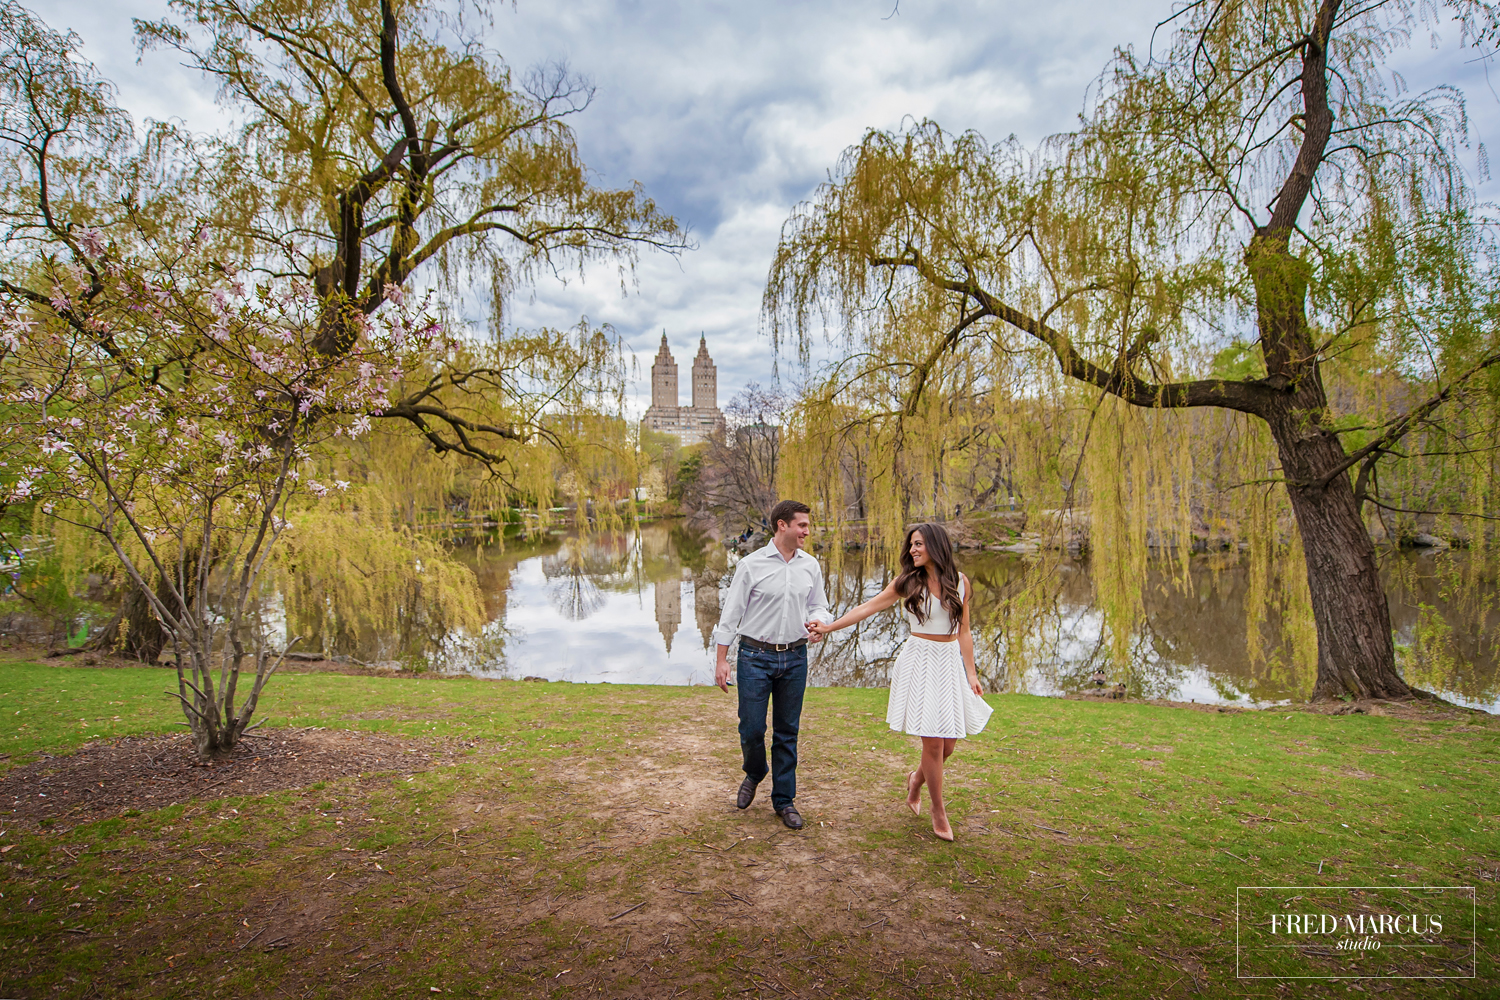 Photograph of the week: Allison and Michael in Central Park